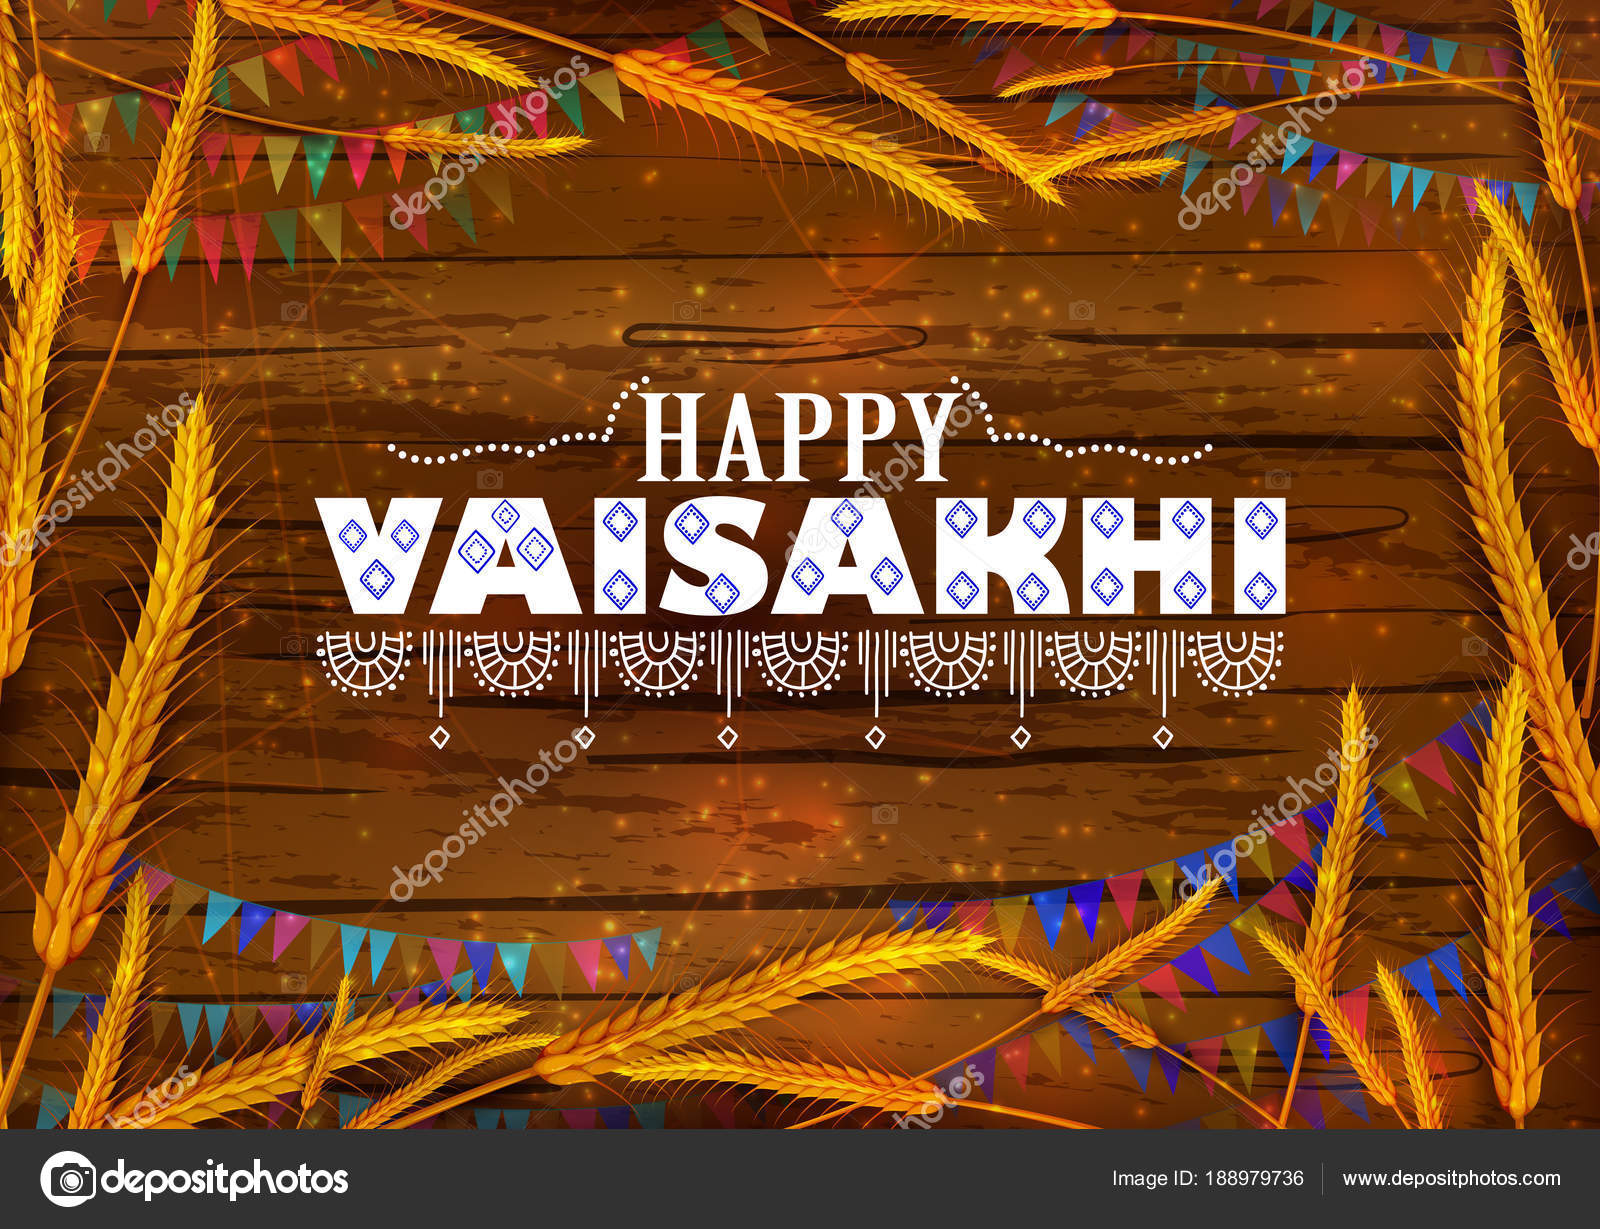 happy vaisakhi punjabi religious holiday background for new year festival of punjab india stock vector